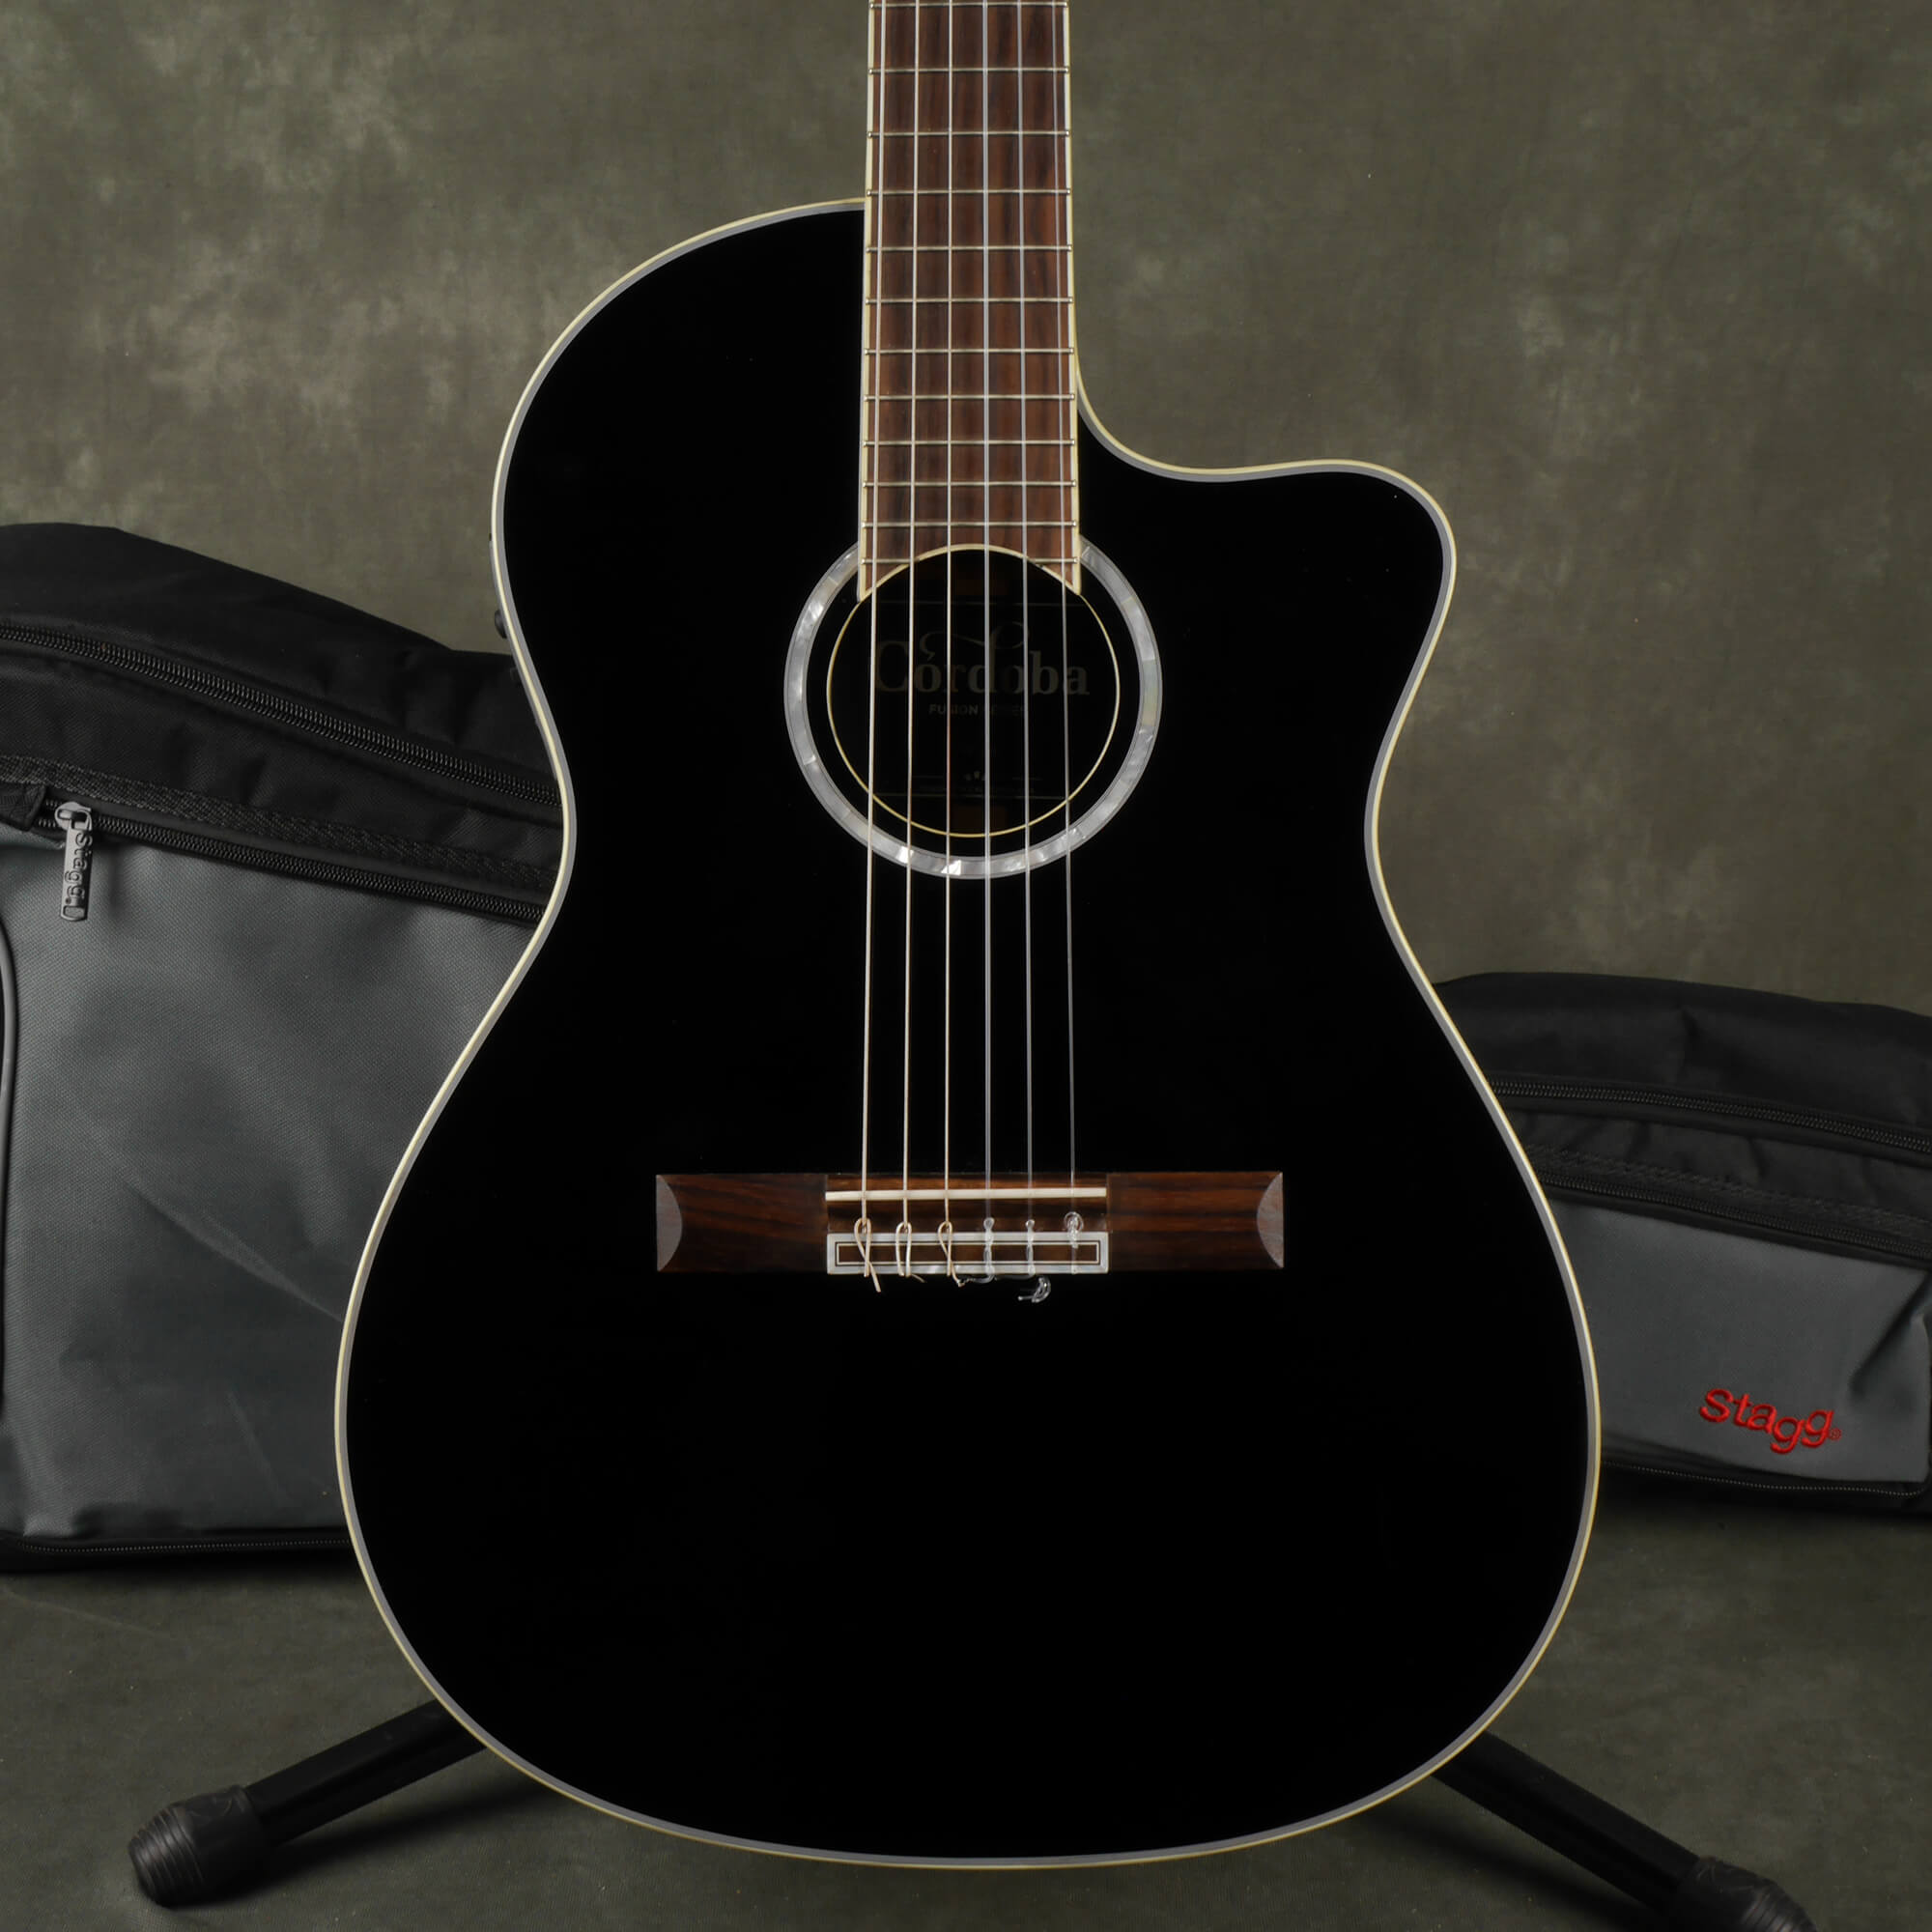 Cordoba Fusion 14 Jet Classical Electro-Acoustic Guitar - Black w/Bag - 2nd Hand